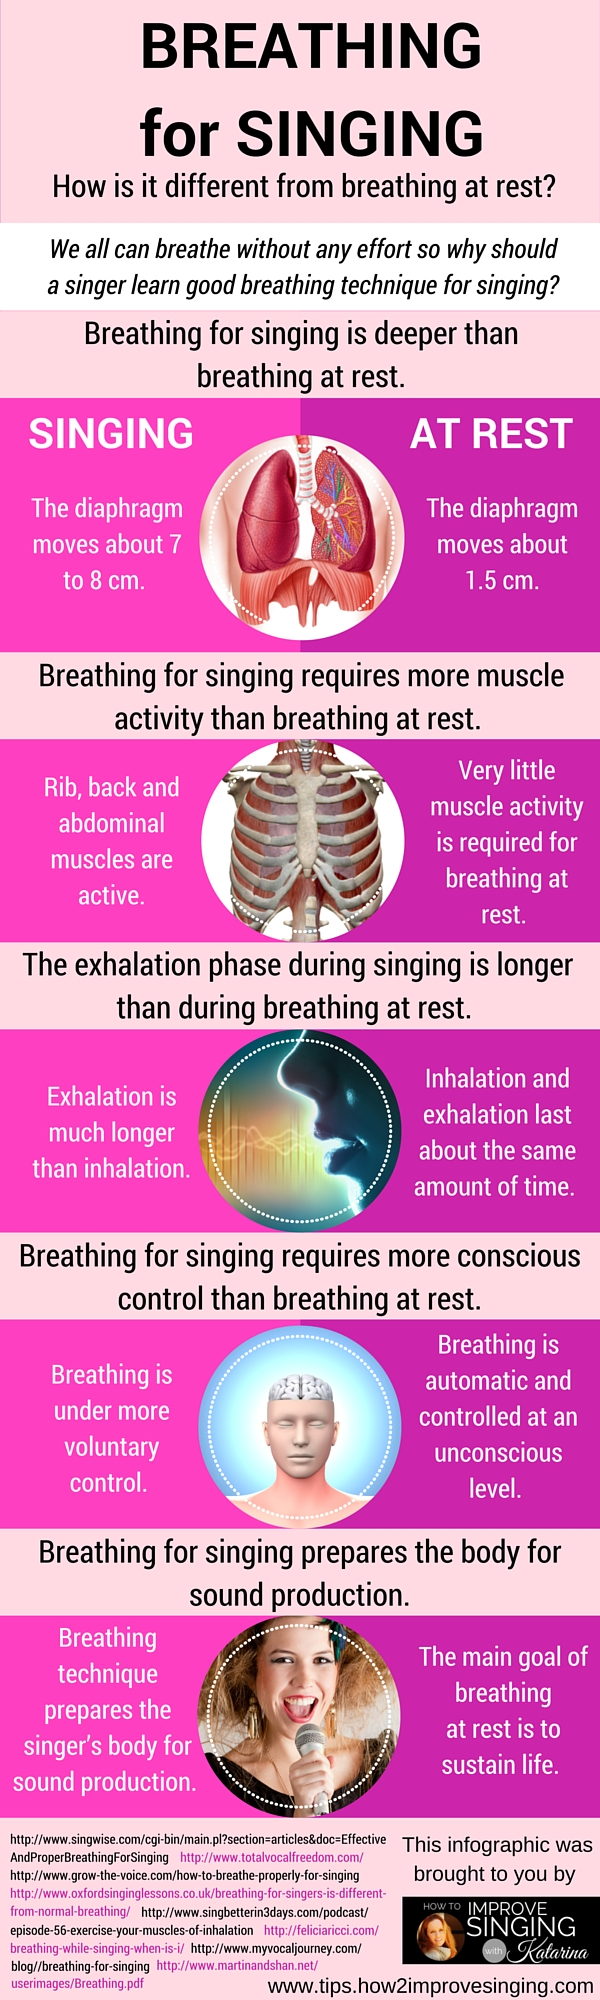 breathing for singing how is it different